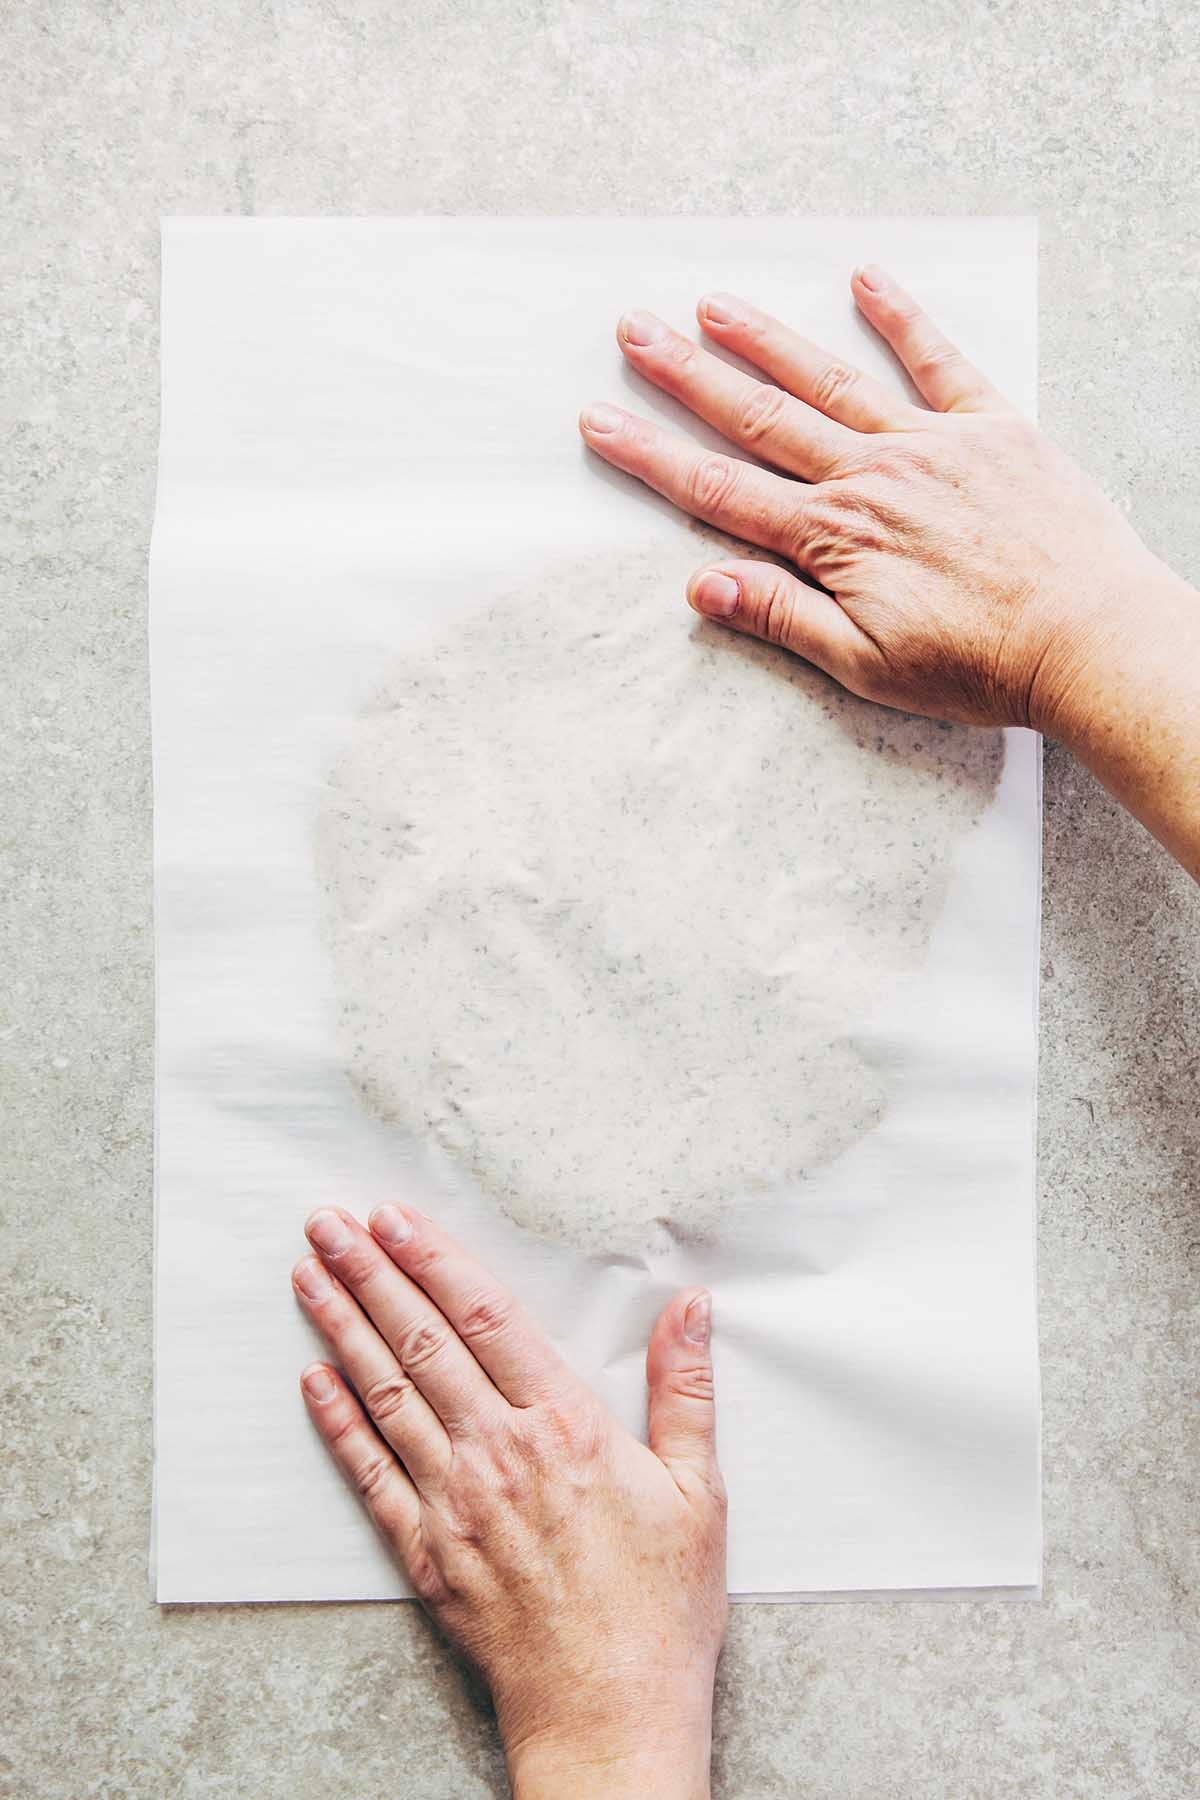 Two hands flattening dough between two pieces of parchment paper.